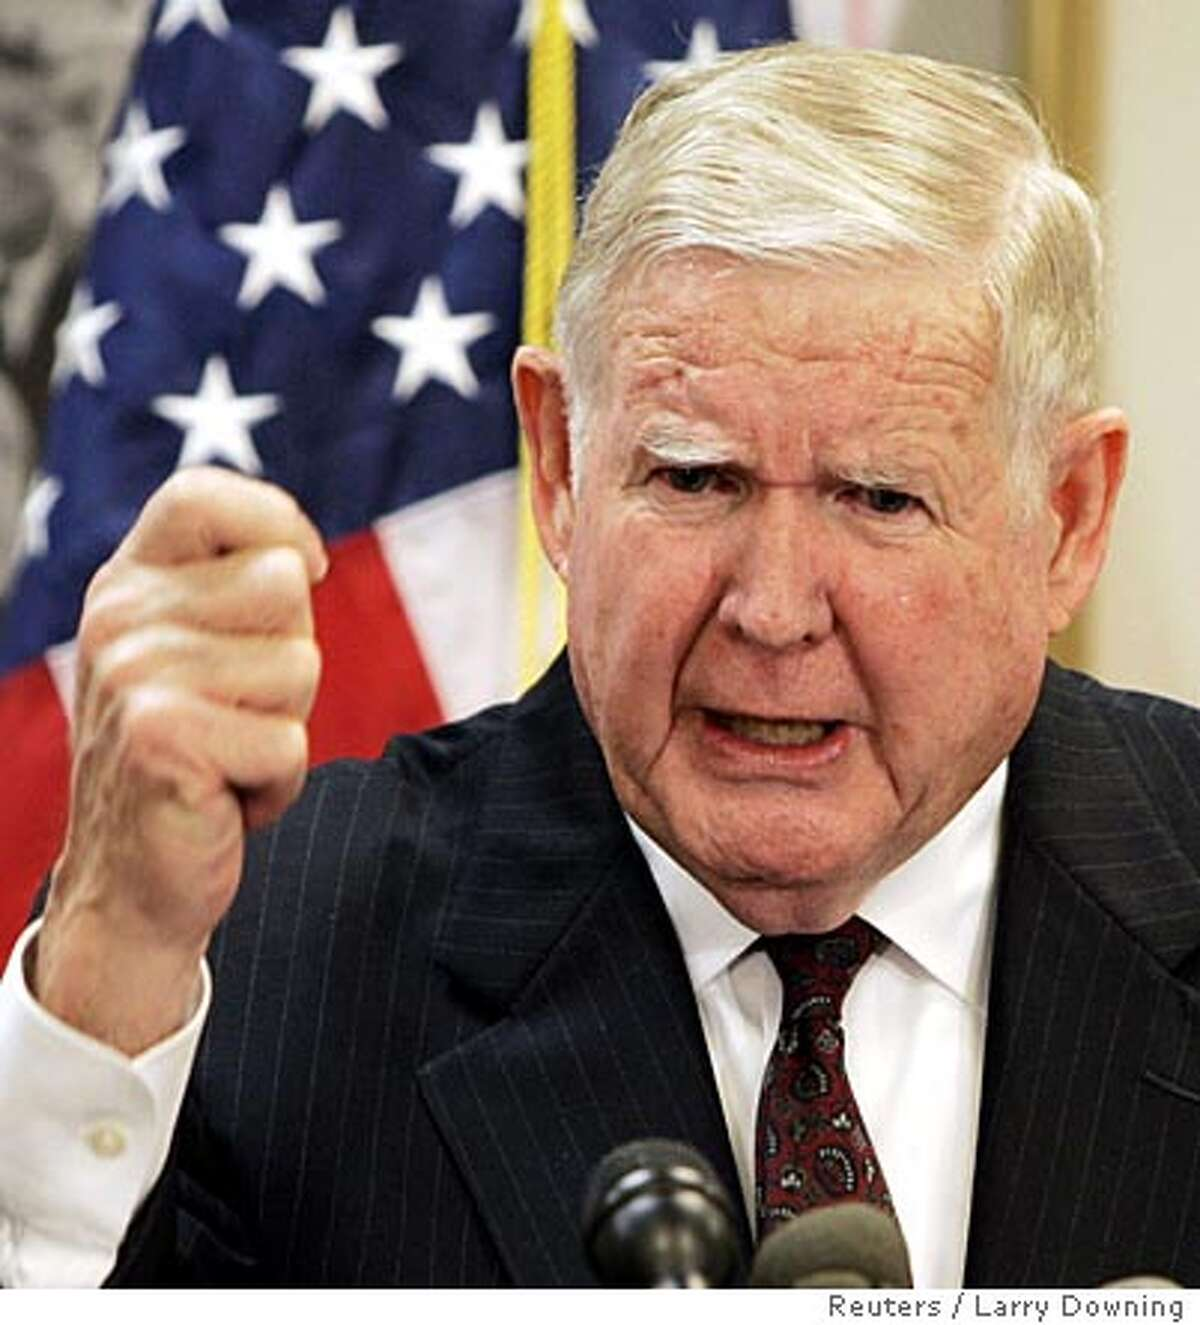 """U.S. Rep. John Murtha (D-Pa) calls for the withdrawal of U.S. military personnel from Iraq while at a news conference on Capitol Hill November 17, 2005. Murtha called the war """"a flawed policy wrapped in illusion"""" and noted a shift in public sentiment against the war. REUTERS/Larry Downing"""